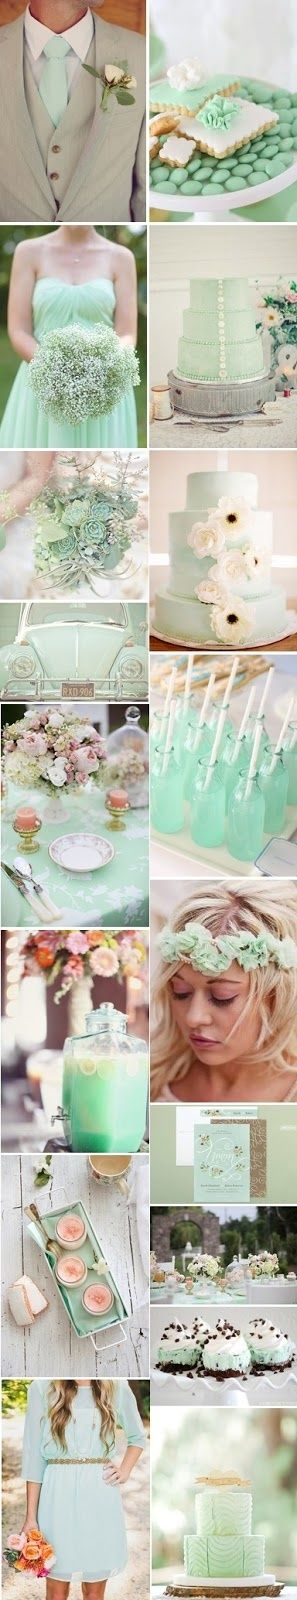 Don't normally post wedding stuff but this is all put together so nicely.Love the mint green ties with the grey tuxes for the groomsmen